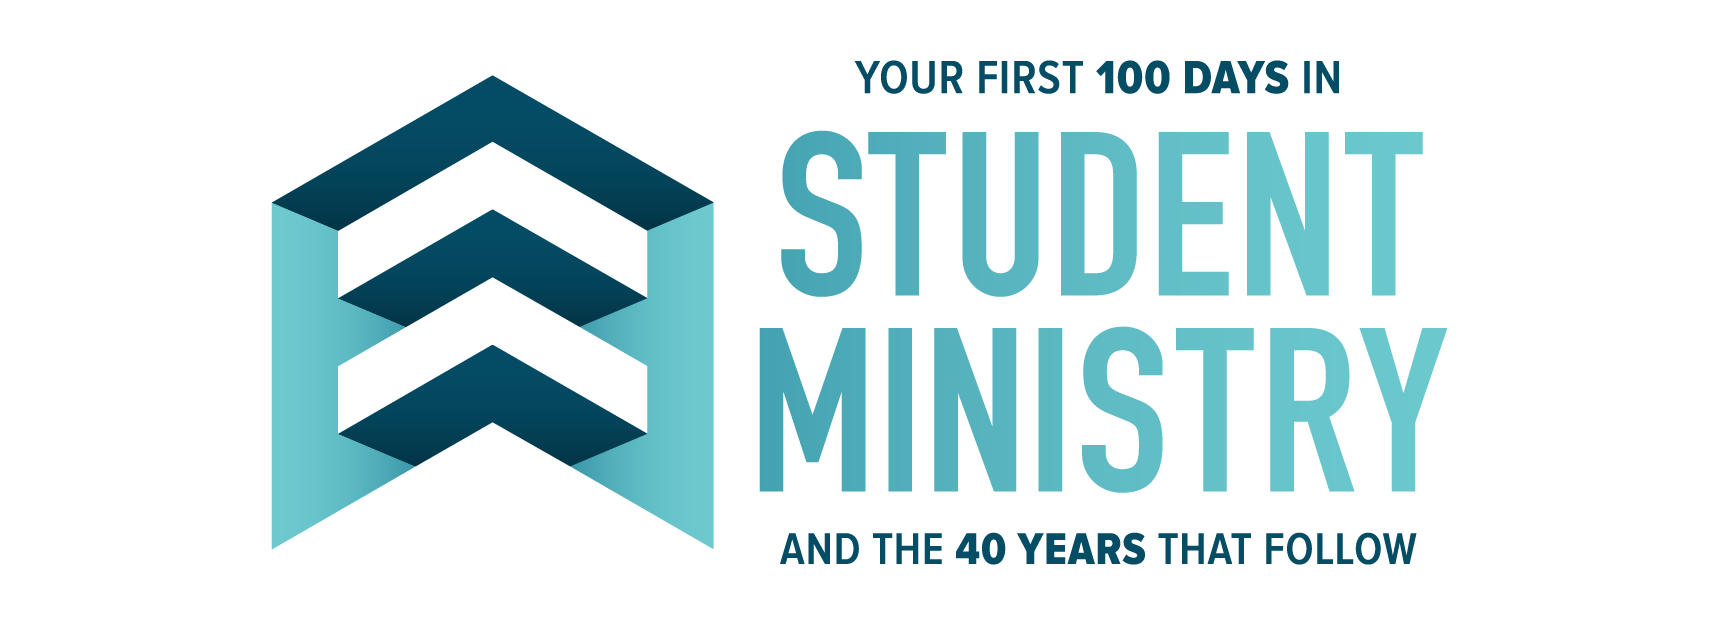 First 100 Days in Student Ministry